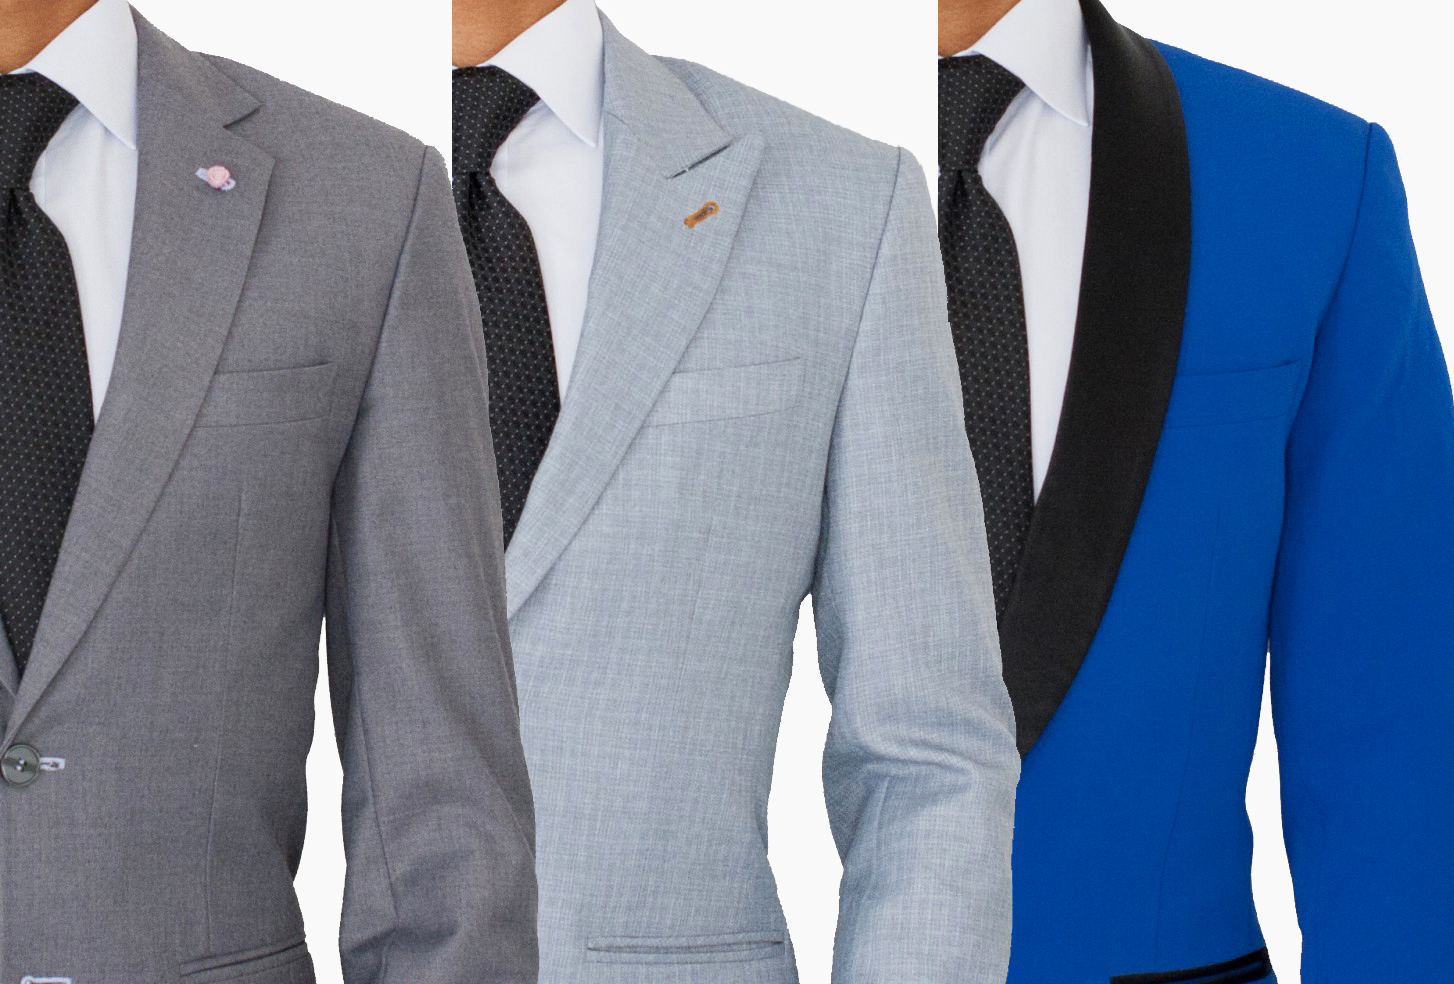 Different lapel types: notch lapel vs. peak lapel vs. shawl lapel